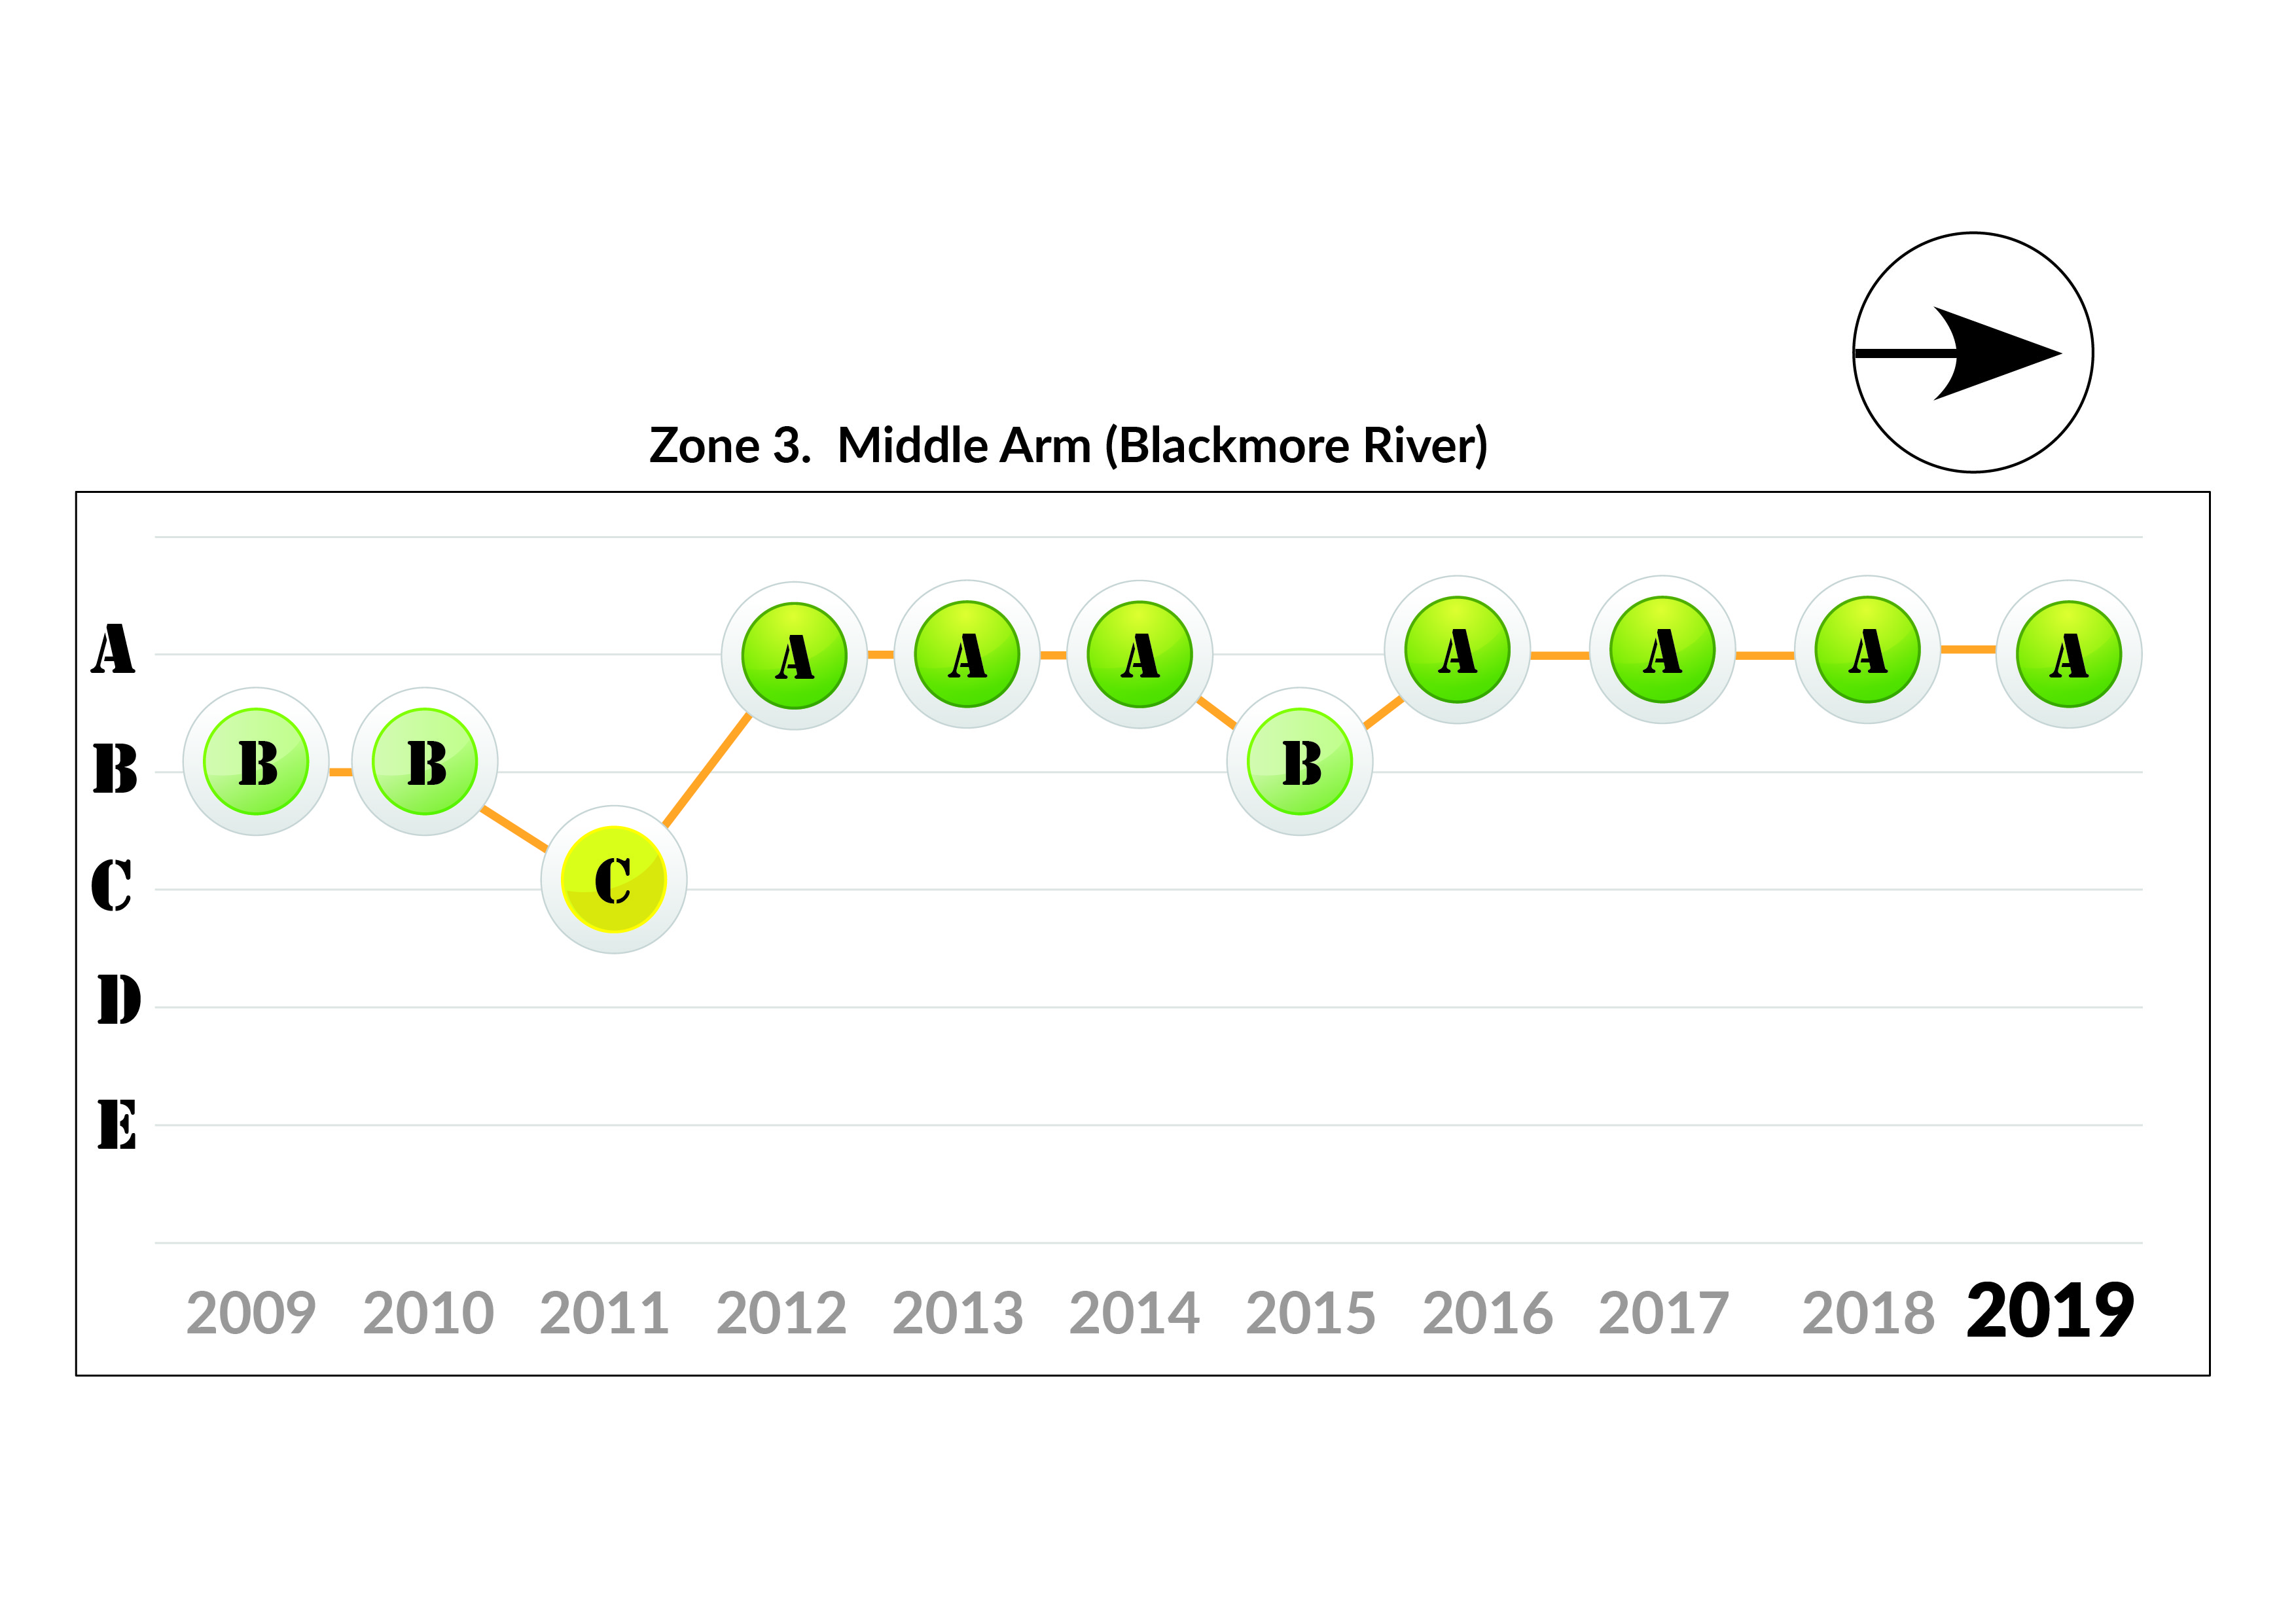 Zone 3 Middle Arm trends